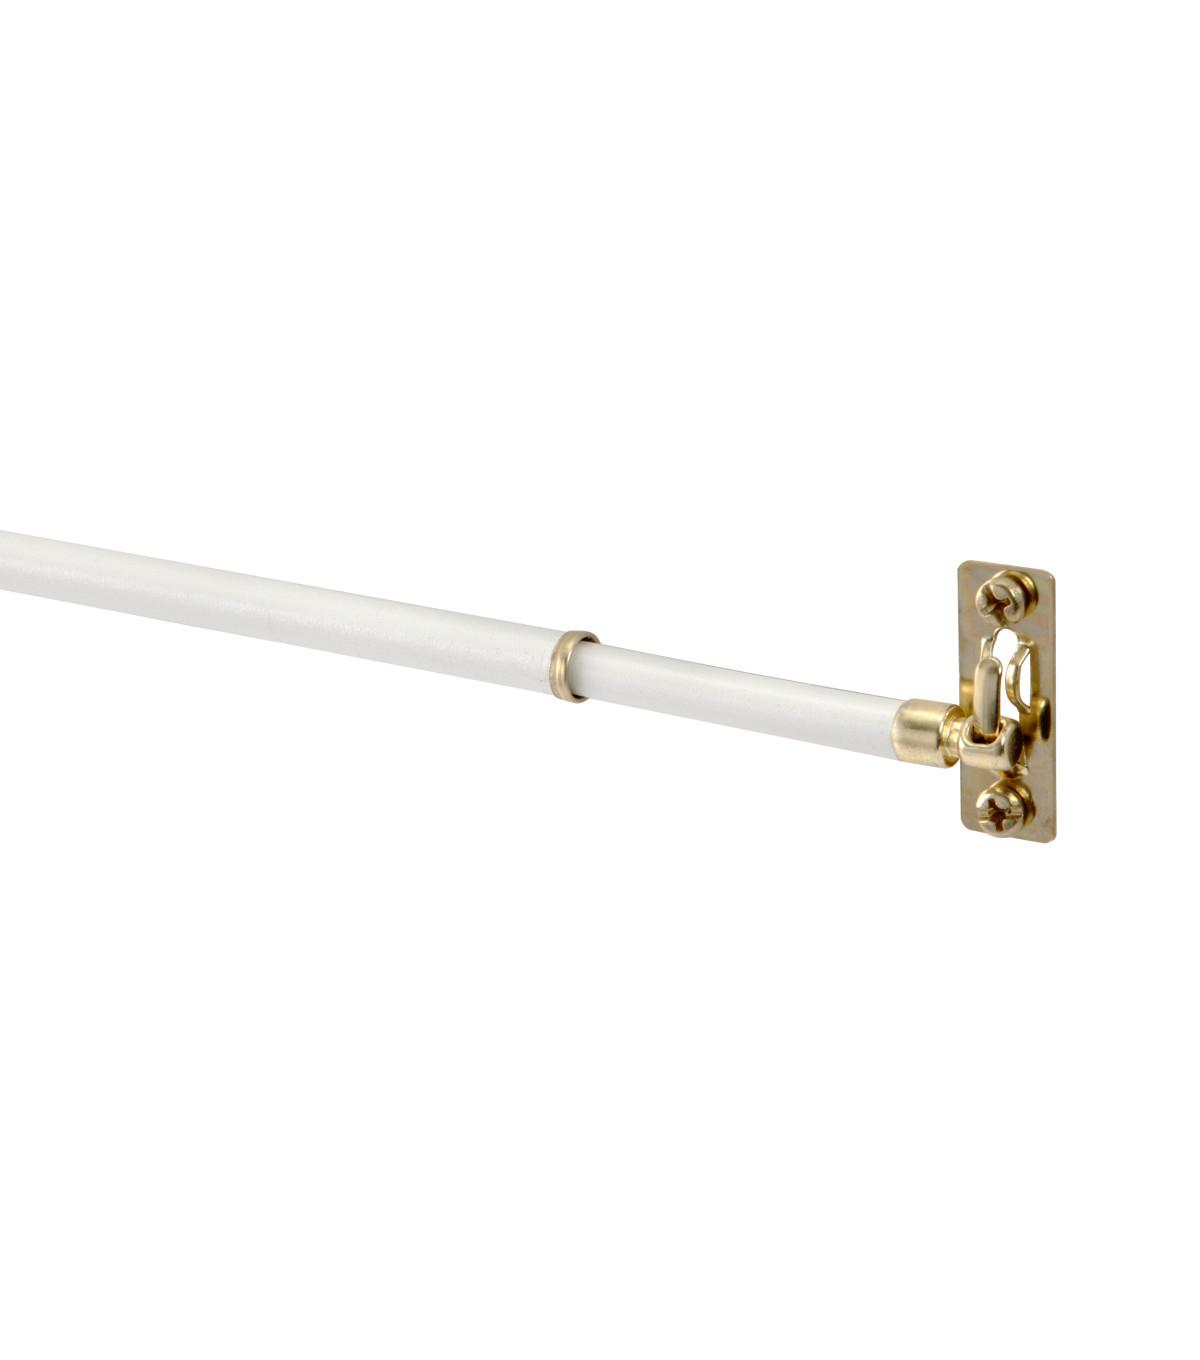 Kenney 11\u0022 to 19\u0022 Swivel Sash Rod-White